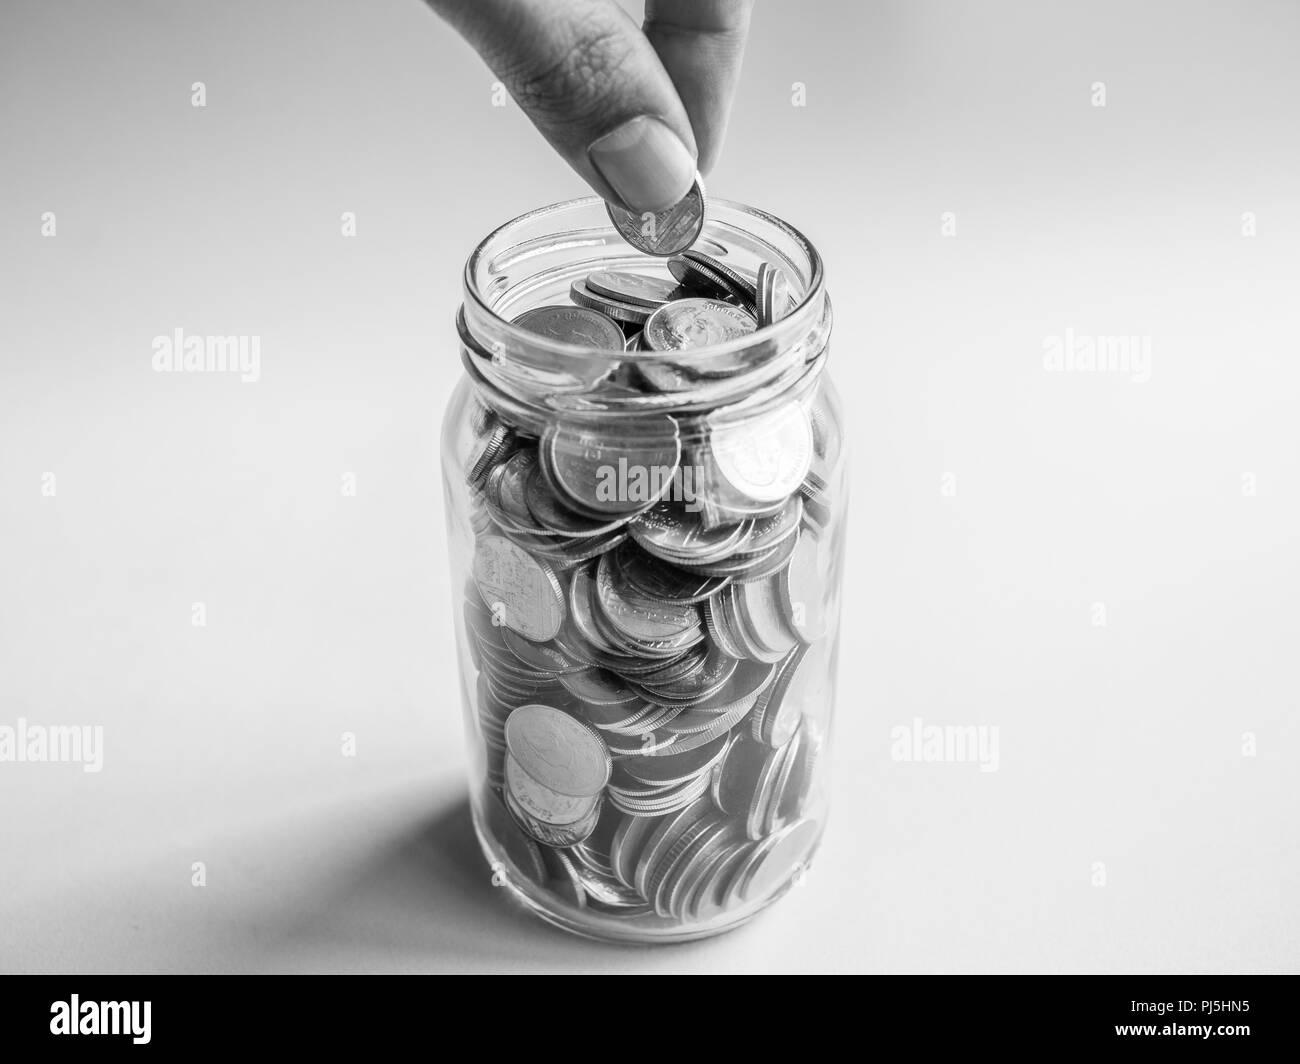 Hand holding coins in glass jar isolated on blue background in black and white style. Saving money concept. - Stock Image